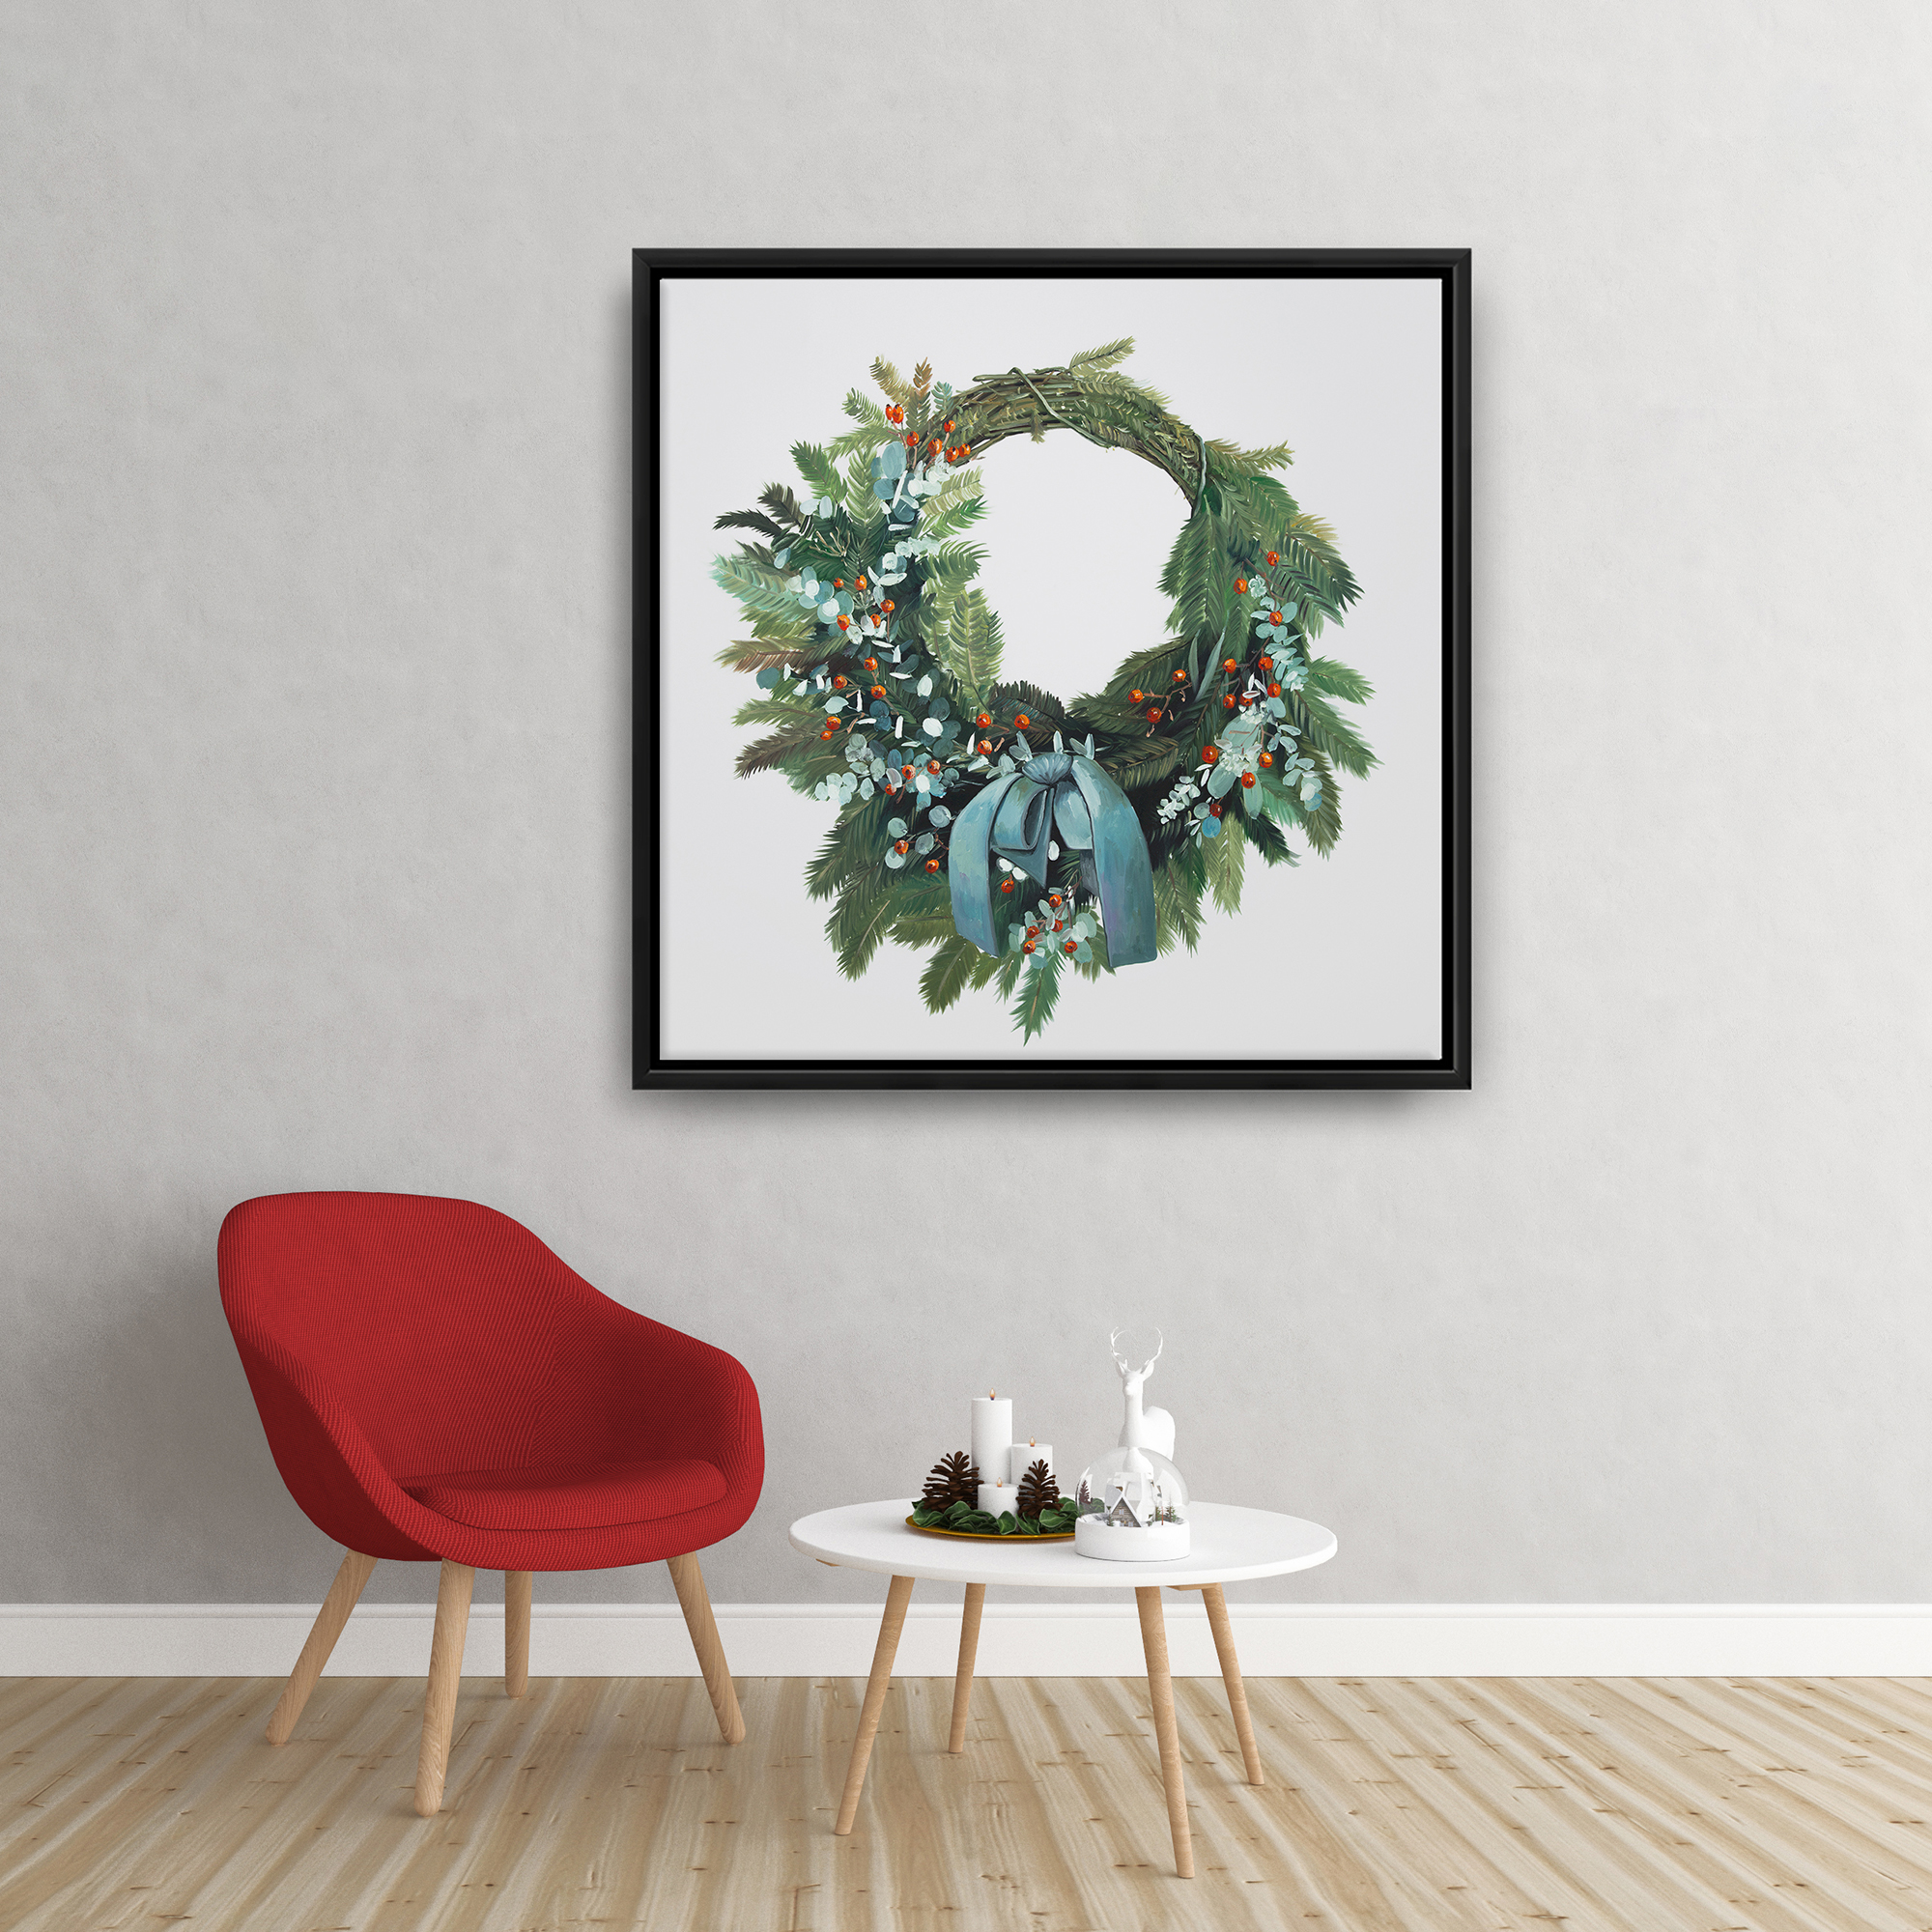 Framed 24 x 24 - Christmas wreath